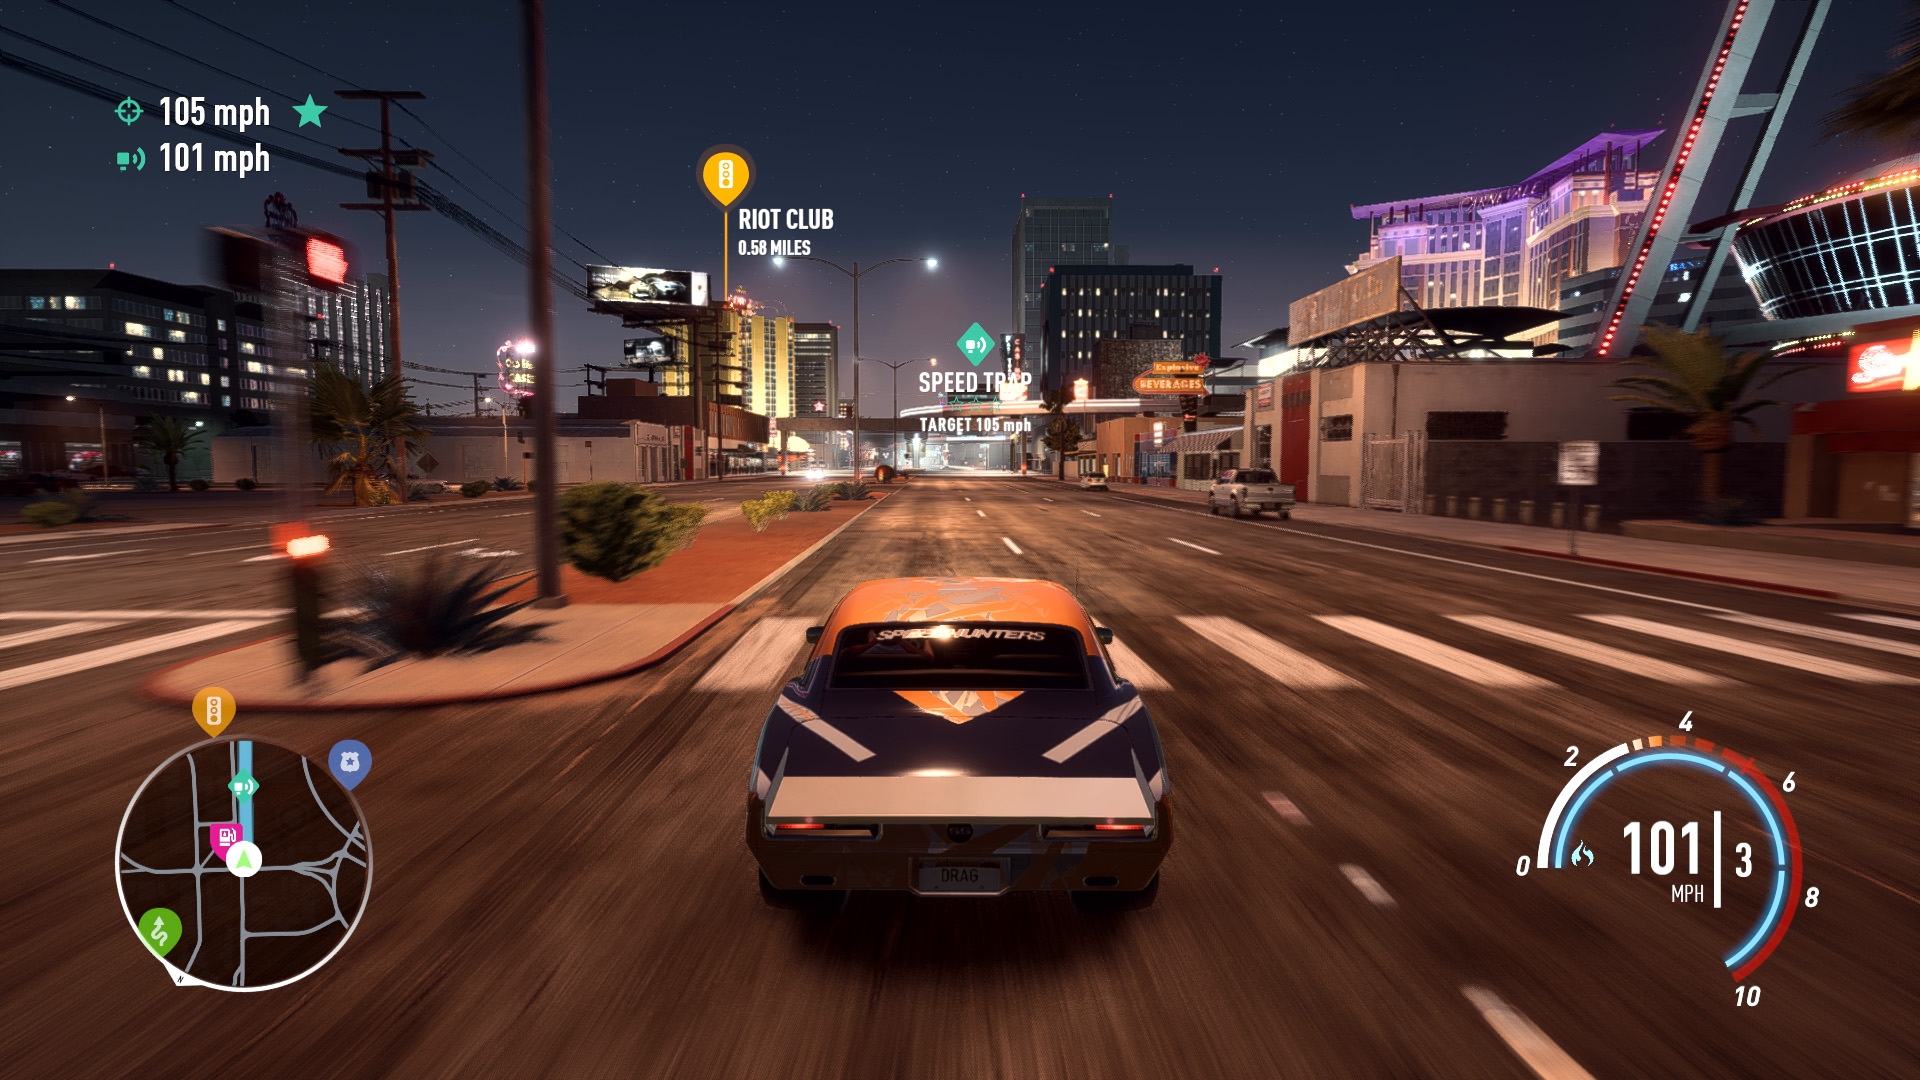 need for speed payback review needs more tuning usgamer. Black Bedroom Furniture Sets. Home Design Ideas